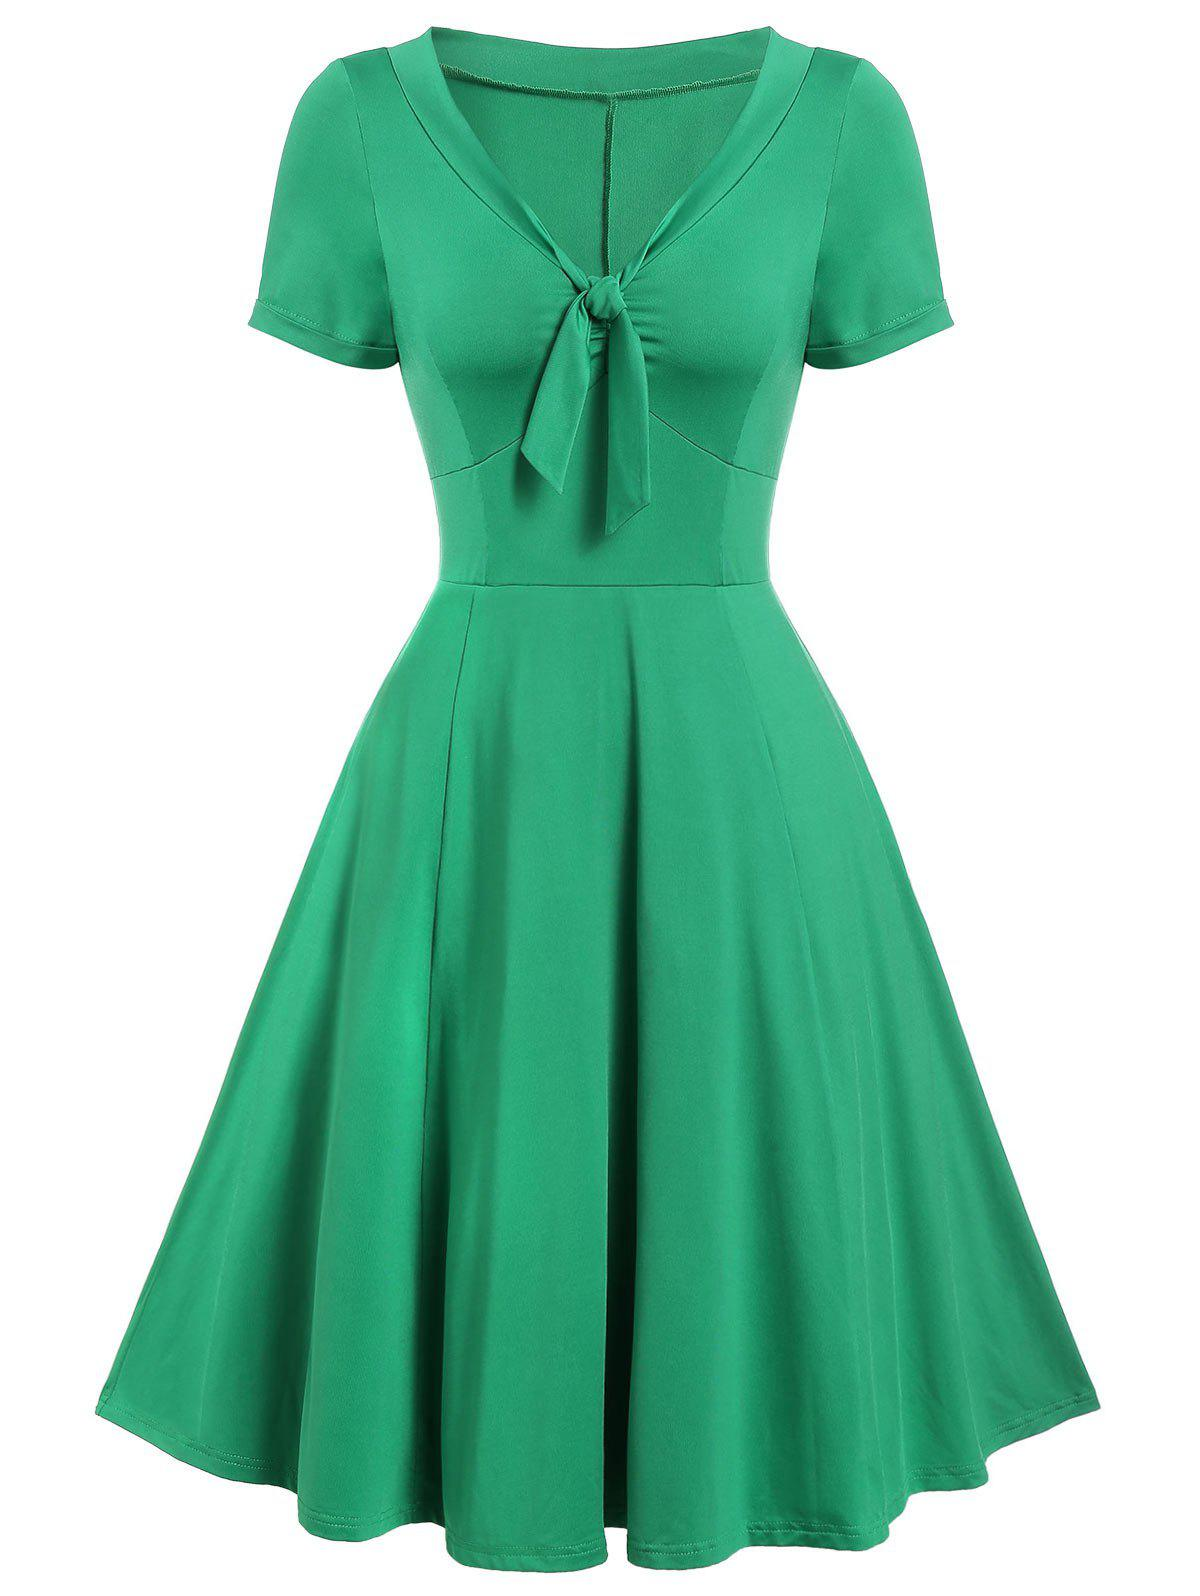 Buy Vintage Bow Tie Fit and Flare Dress